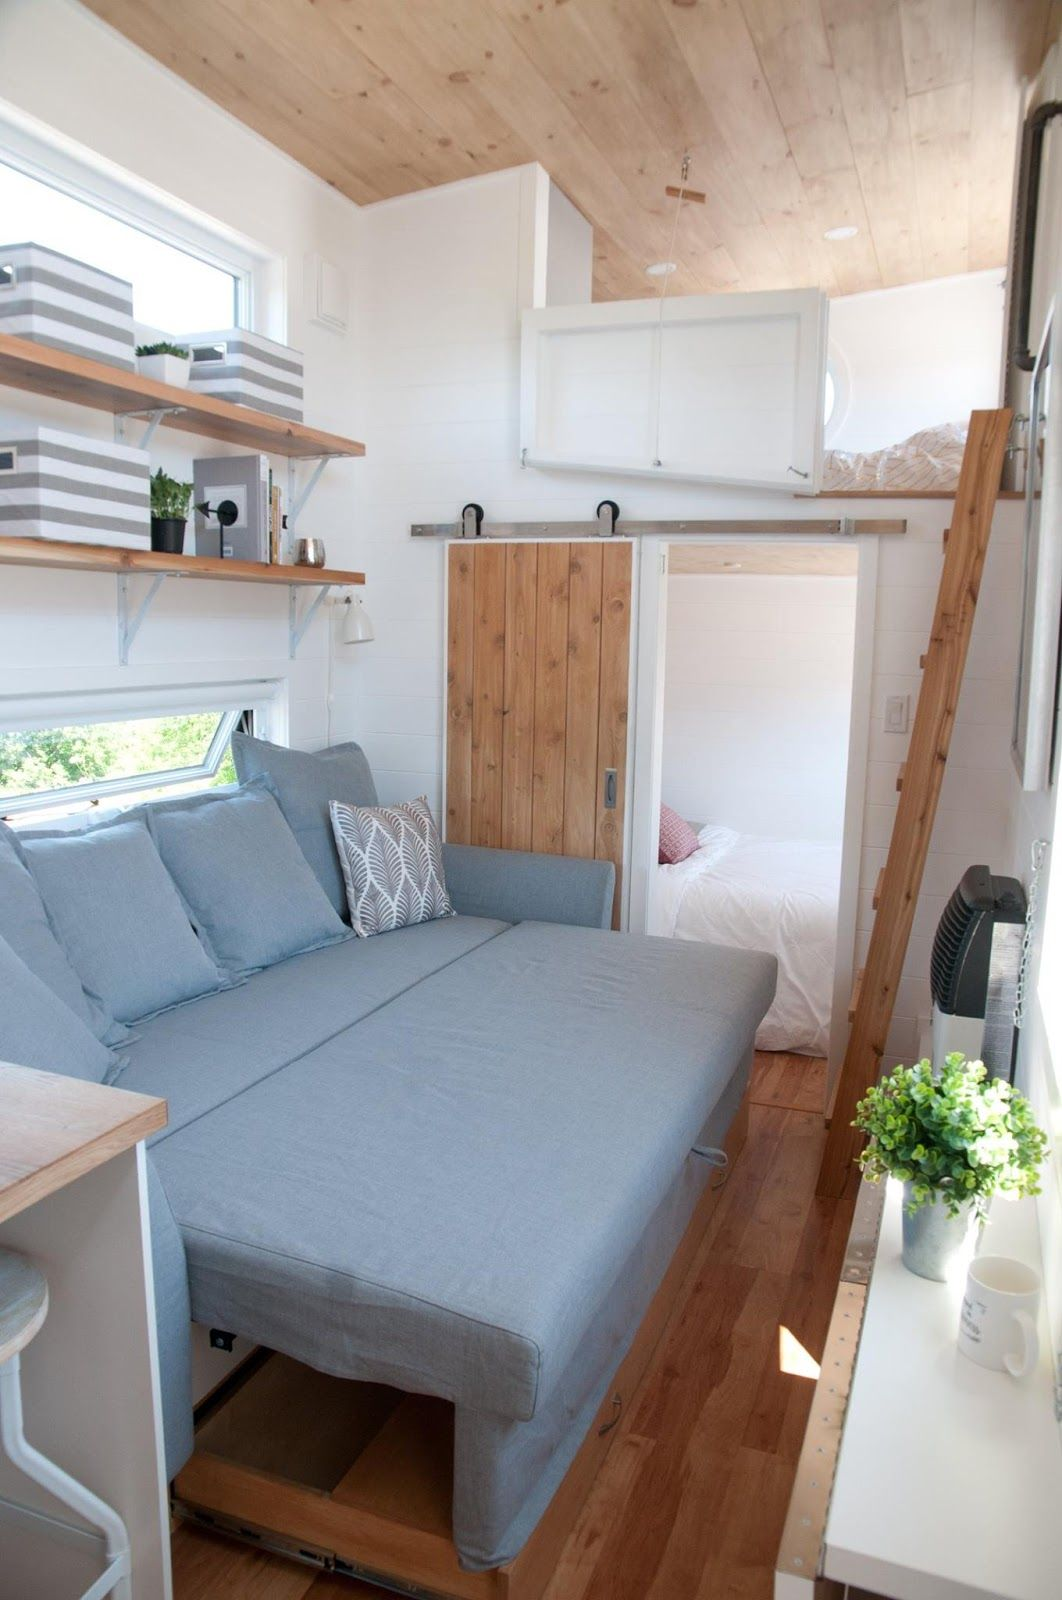 The Acacia A Stunning Modern Tiny House Form Quebec Based